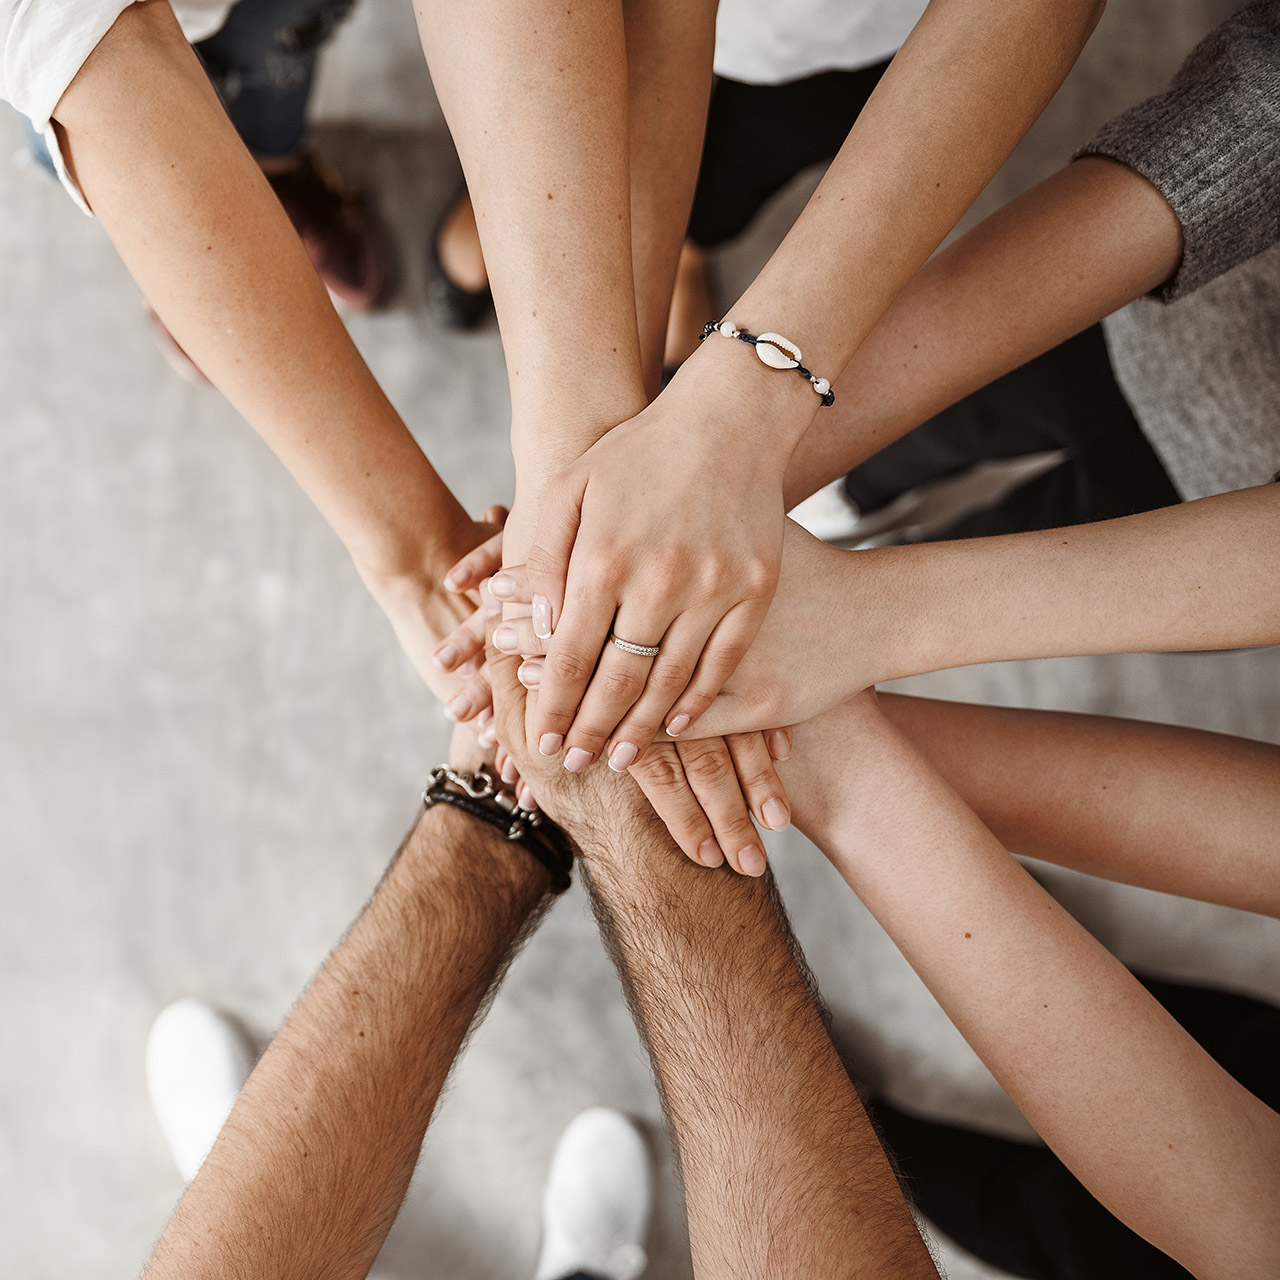 Hands in a circle ready for teamwork